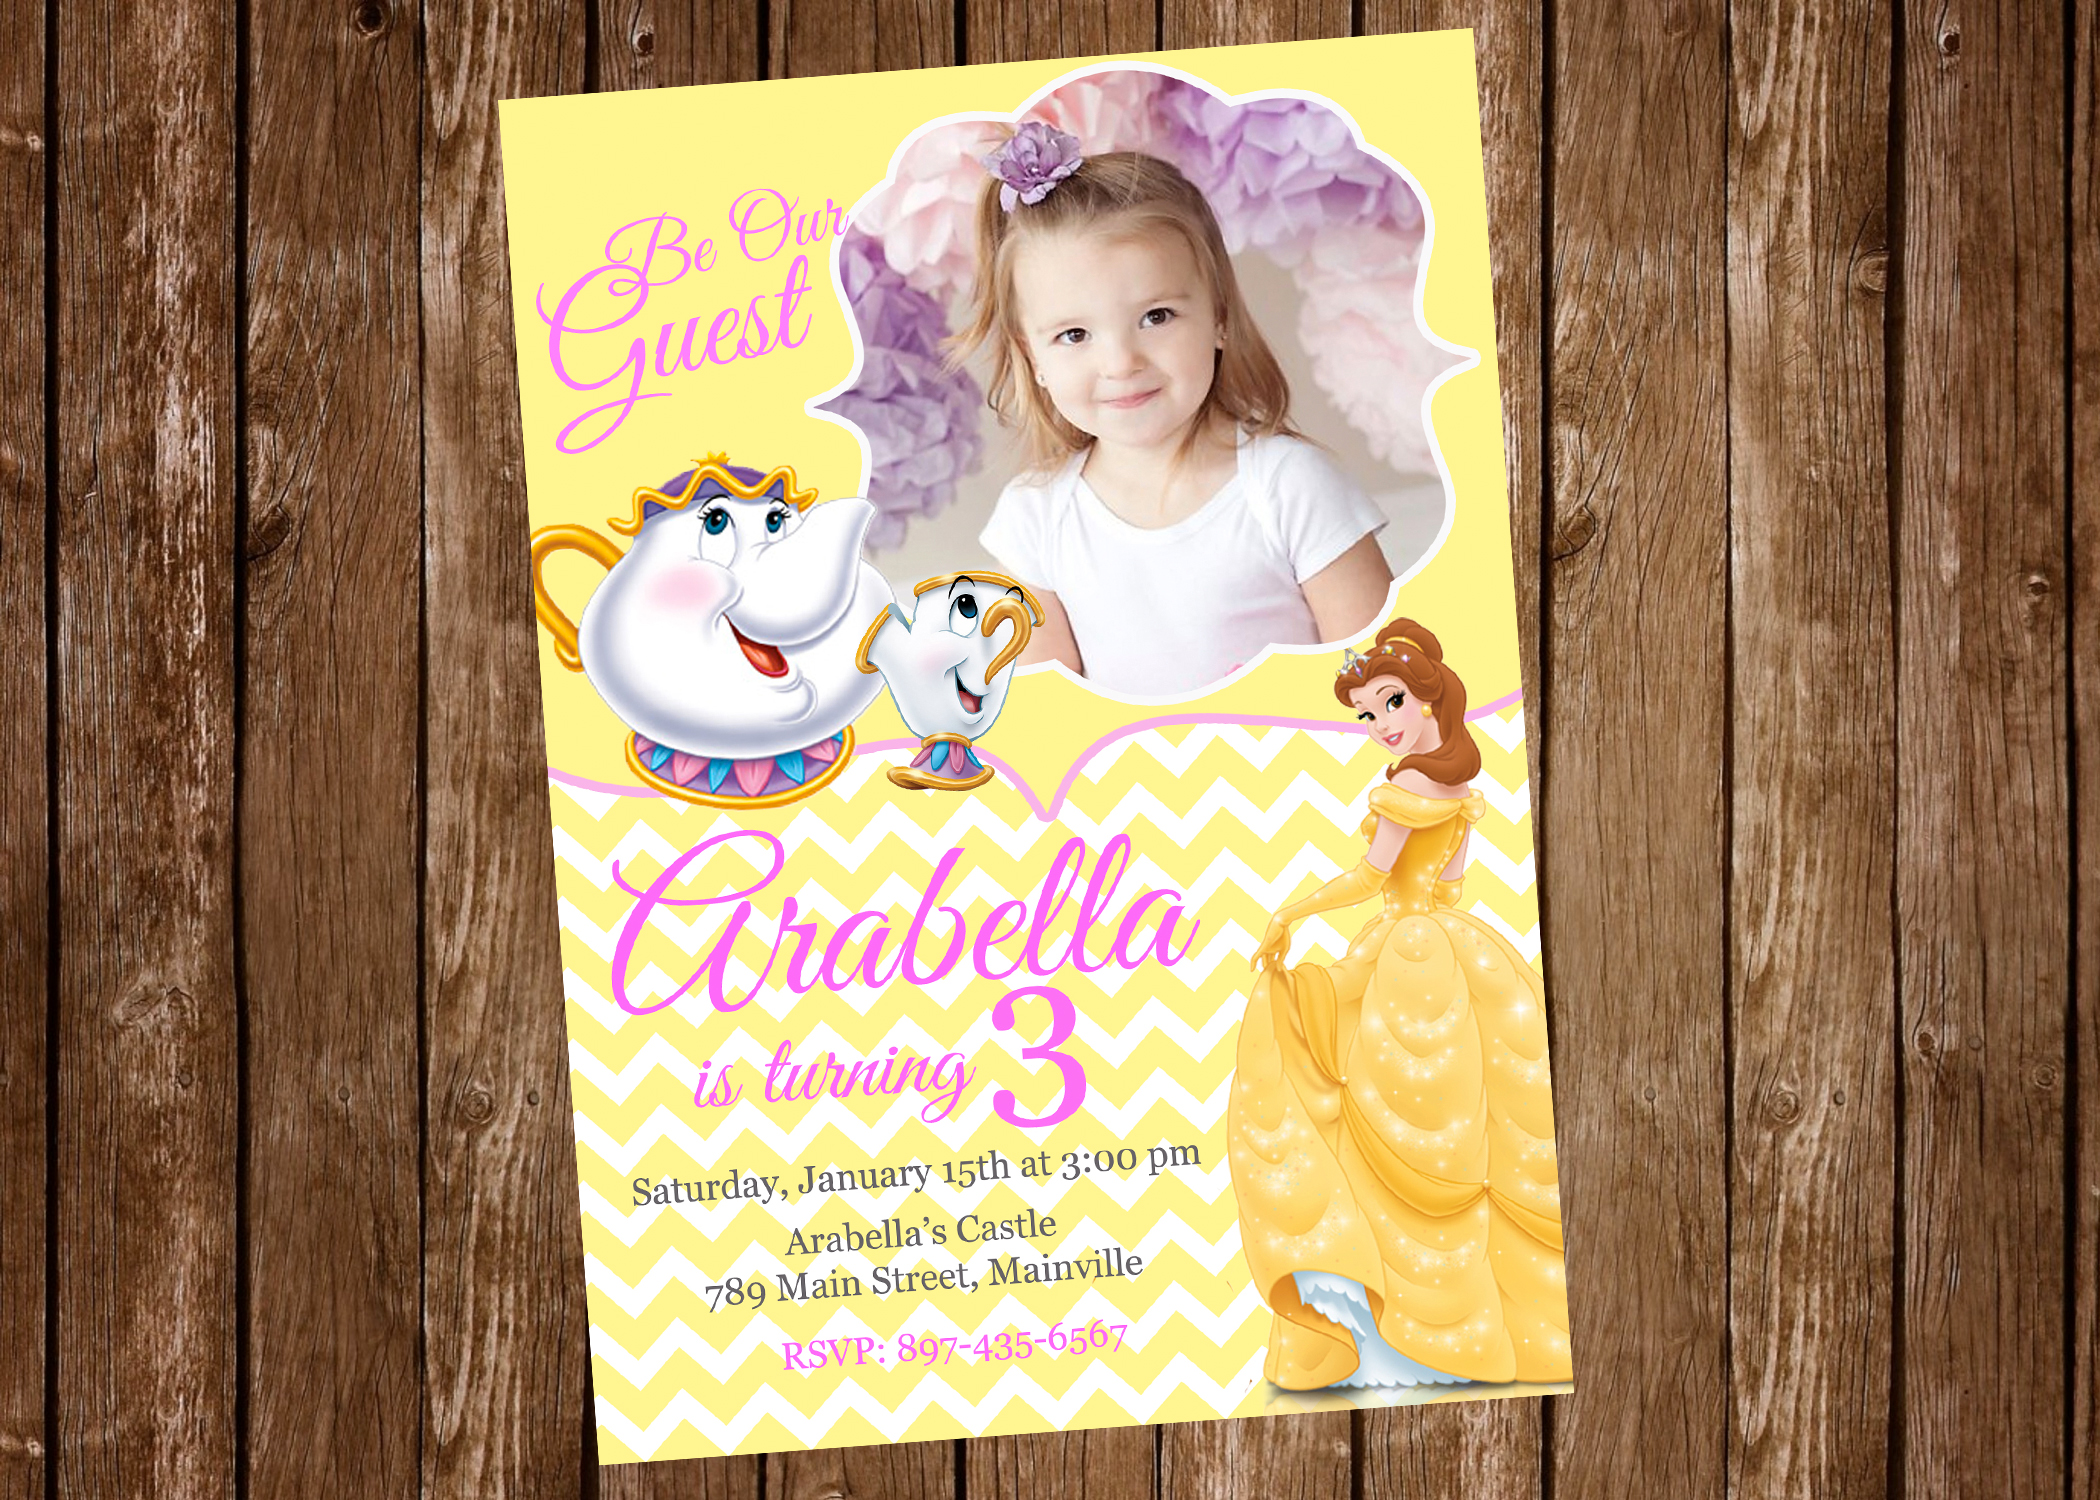 Belle beauty and the beast princess belle birthday party belle 20invitation 20 233 1 original filmwisefo